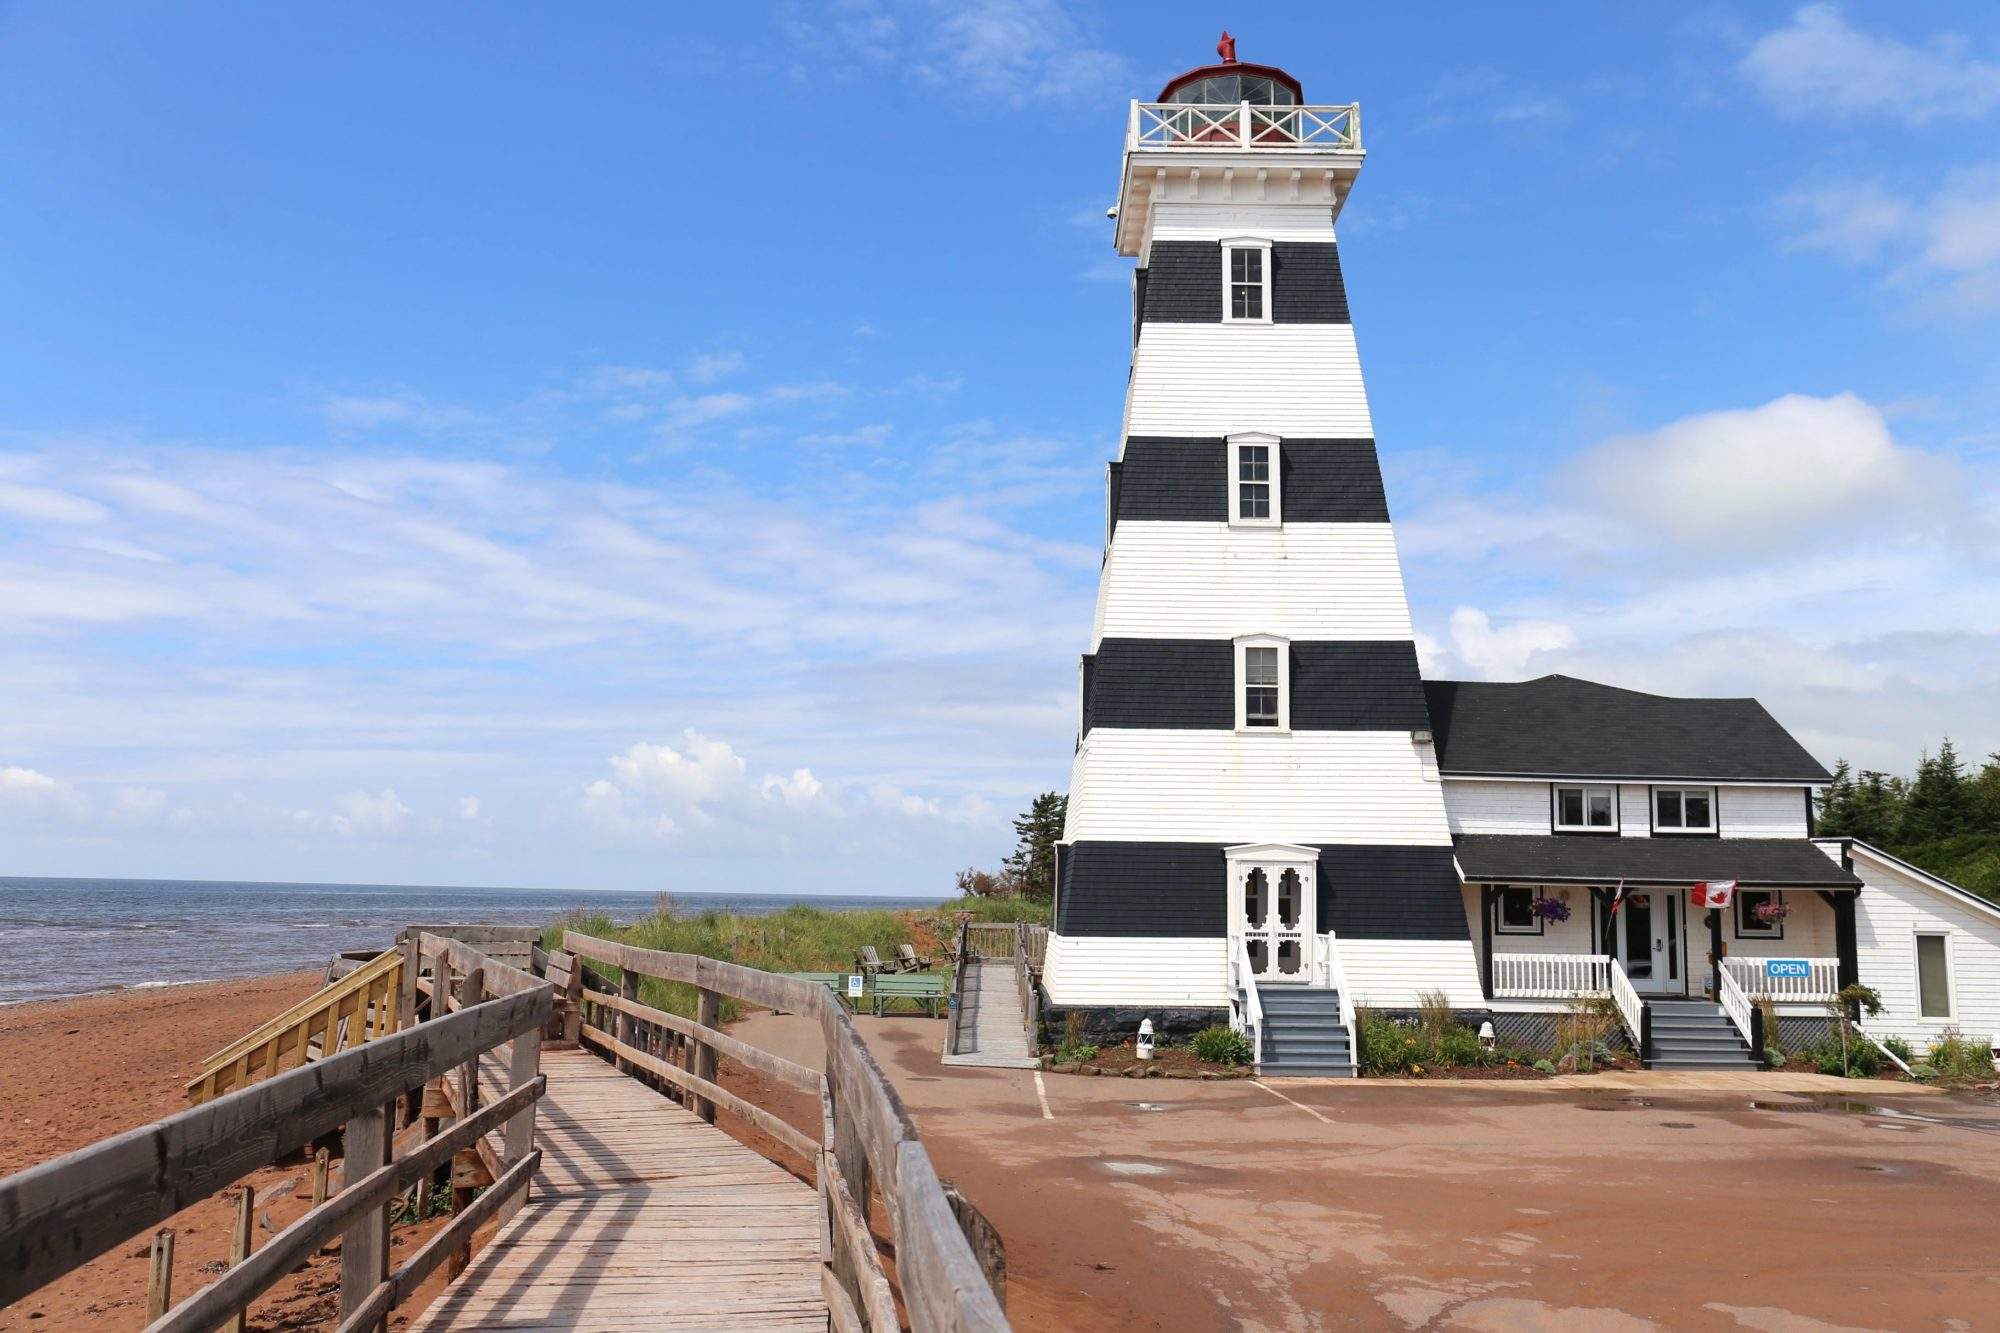 Sleep in a historic lighthouse in Prince Edward Island.